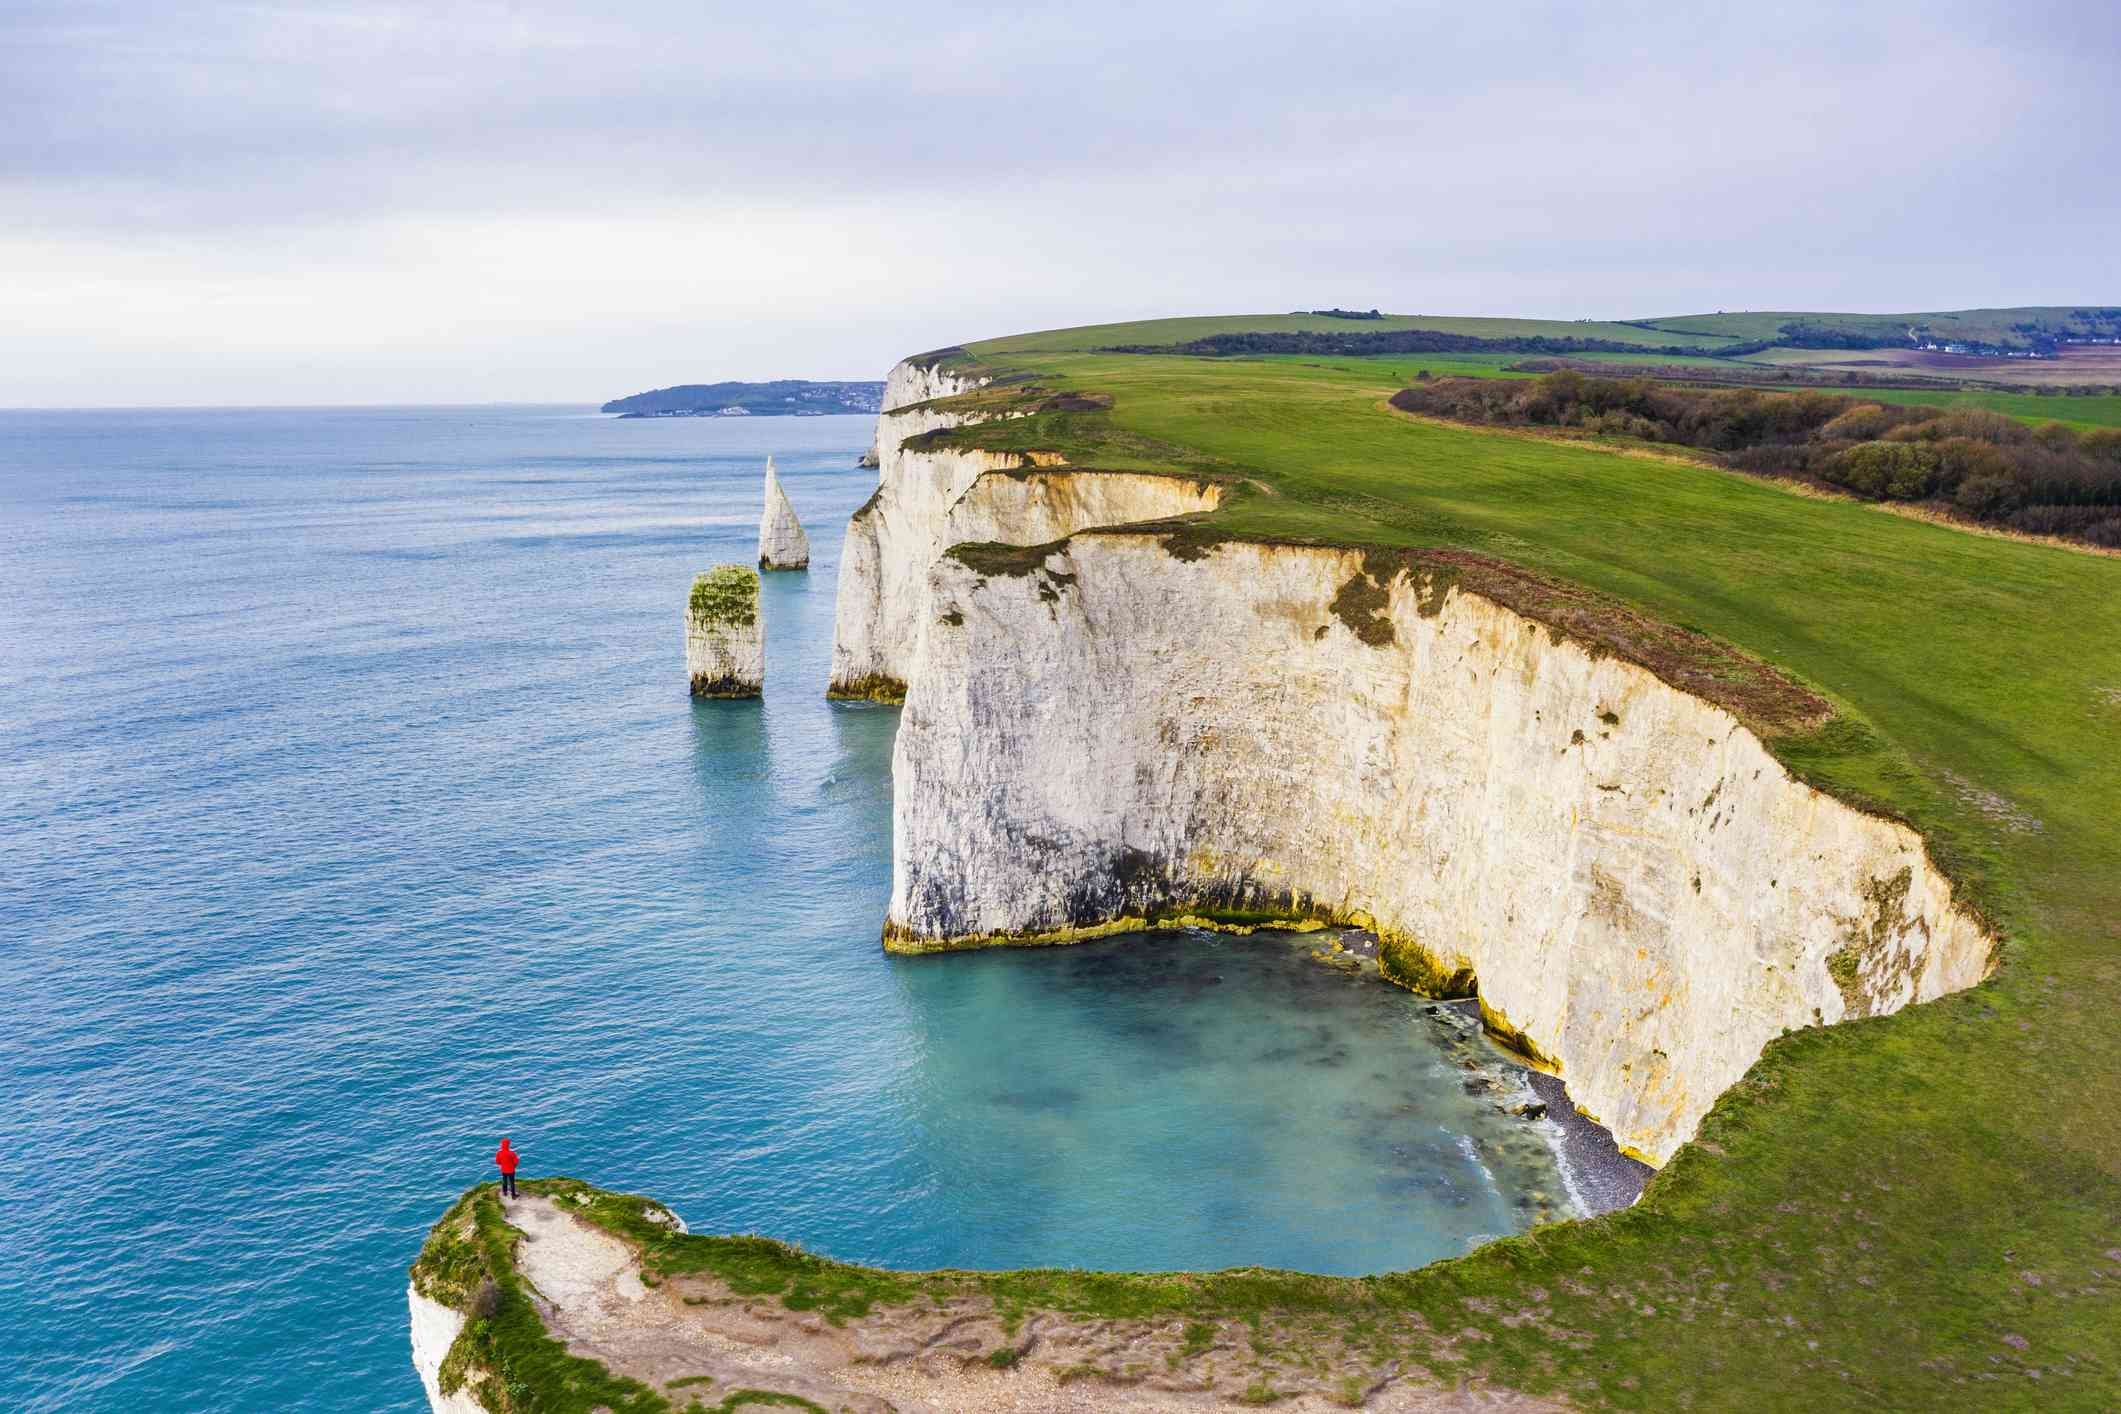 One person looking at view at Old Harry Rocks, Dorset, England